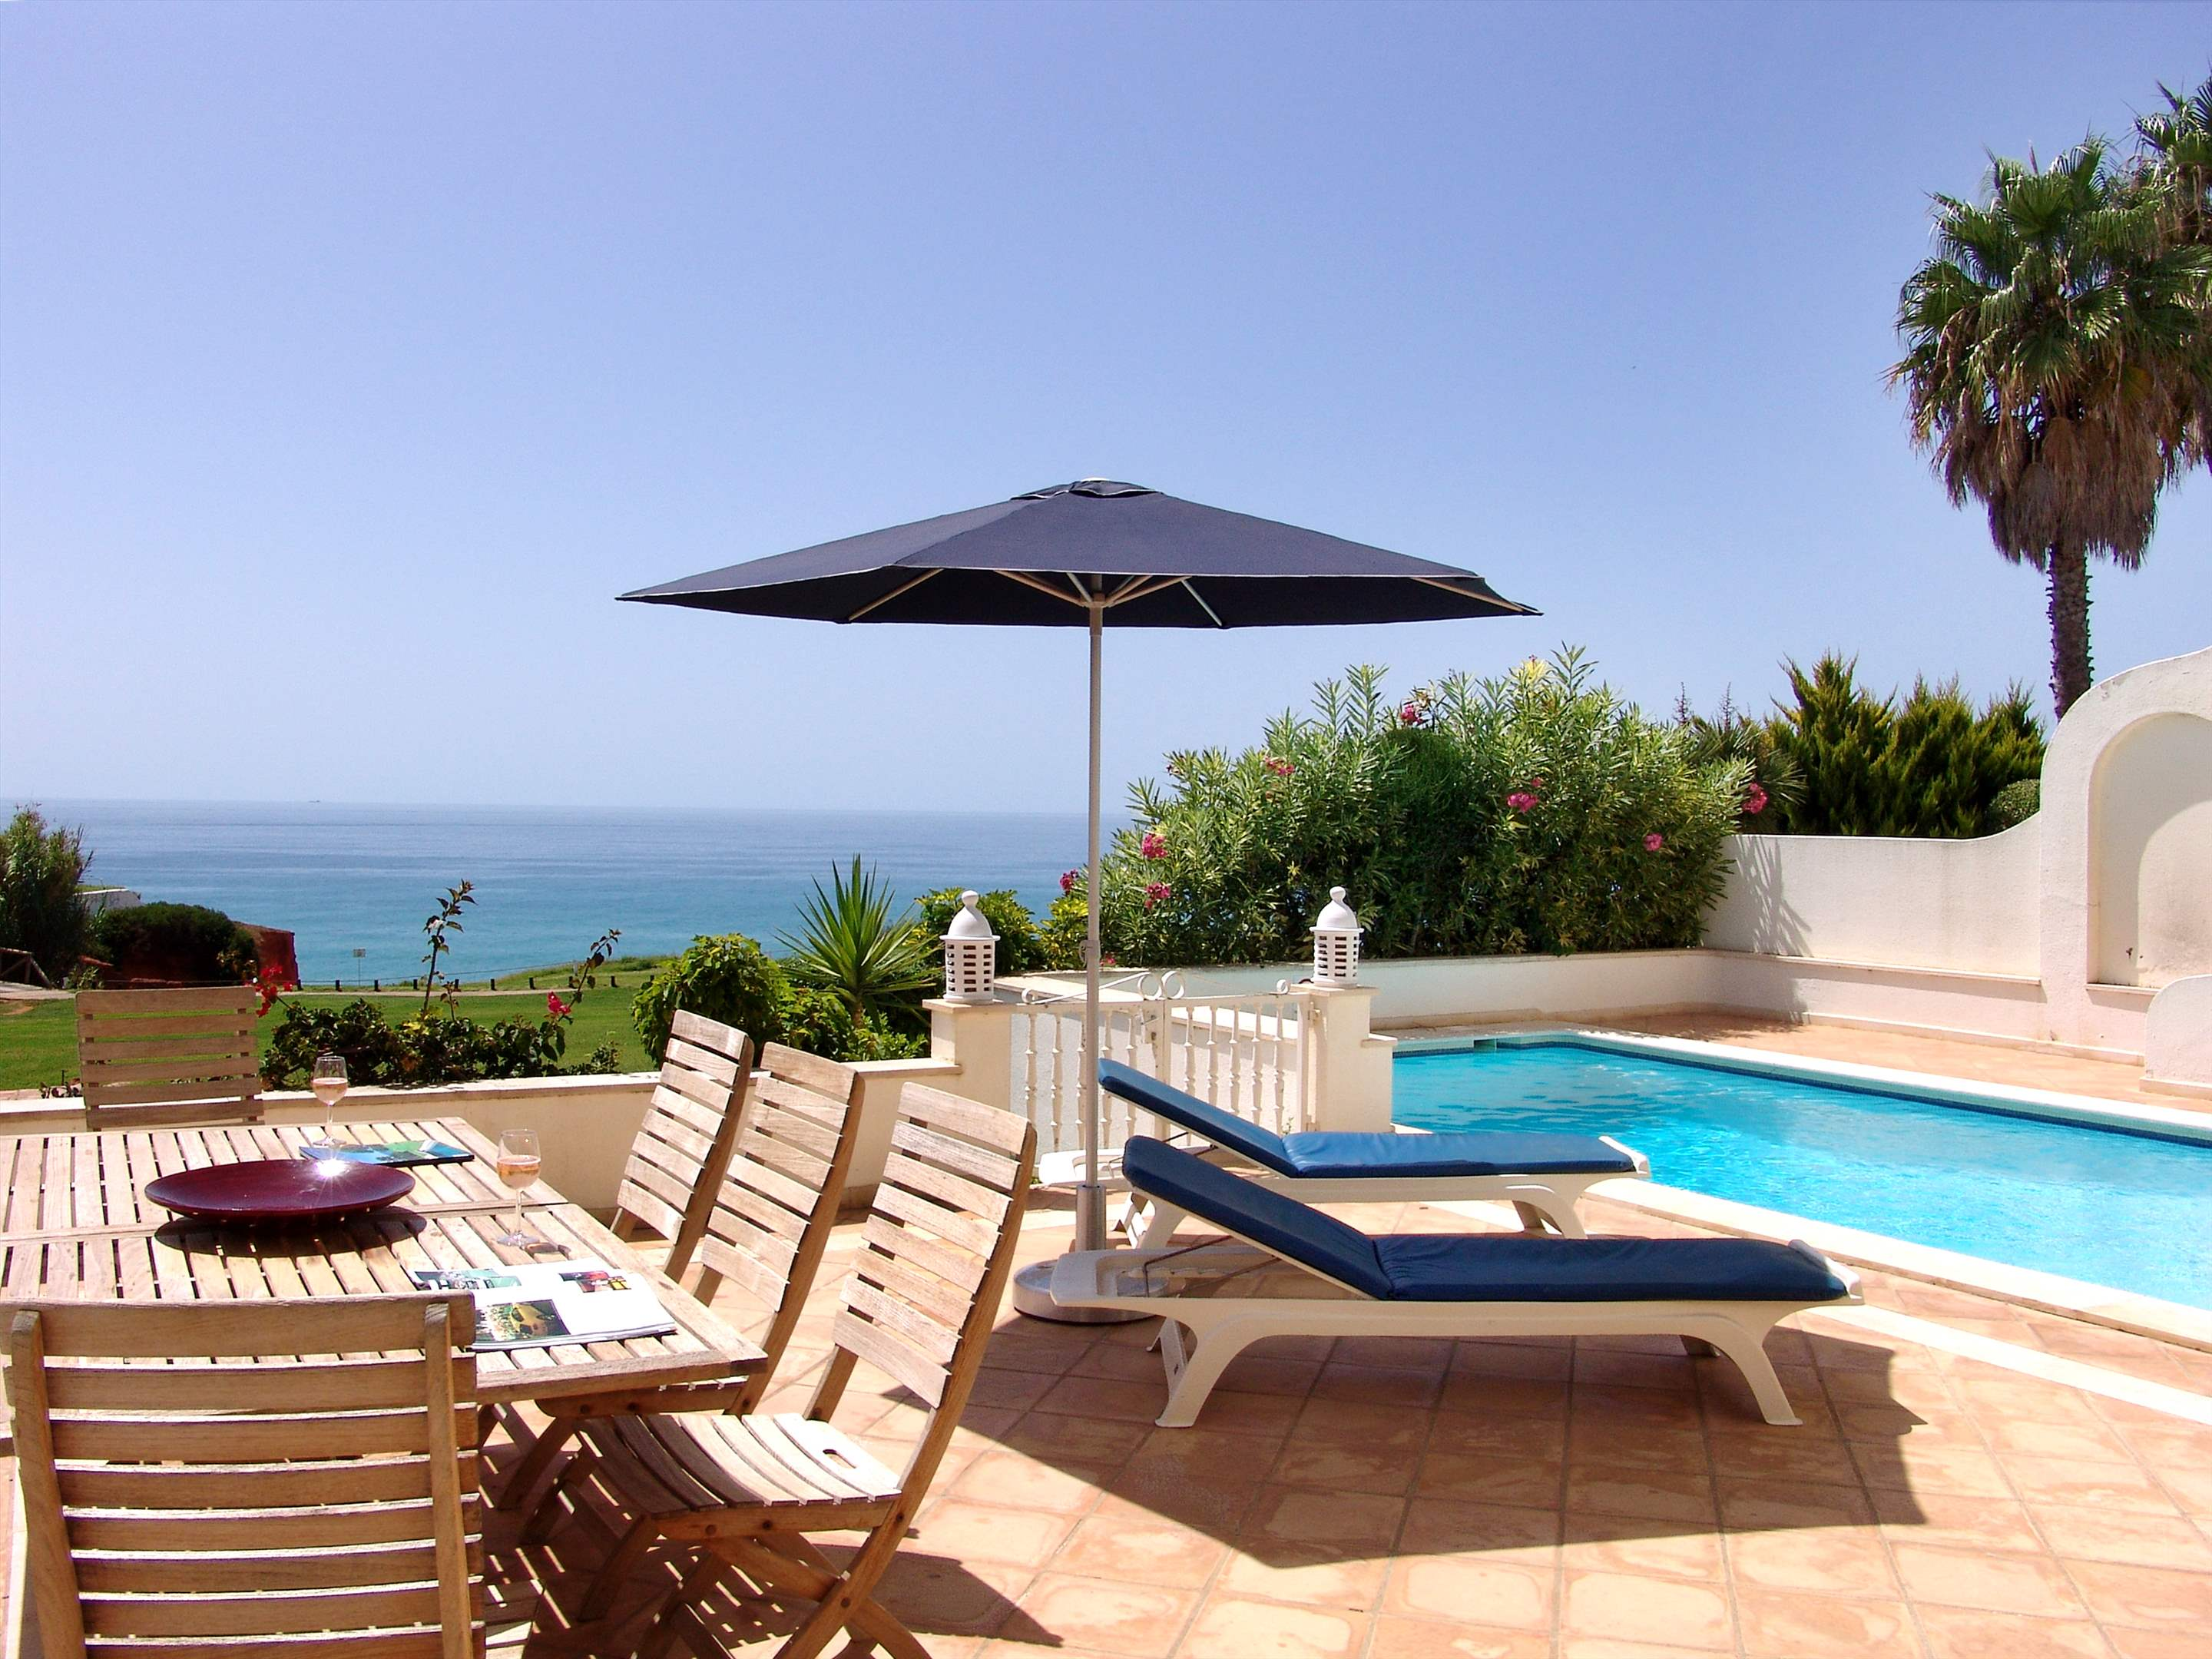 Villas Louisa, 5 bedroom, 5 bedroom villa in Vale do Lobo, Algarve Photo #2